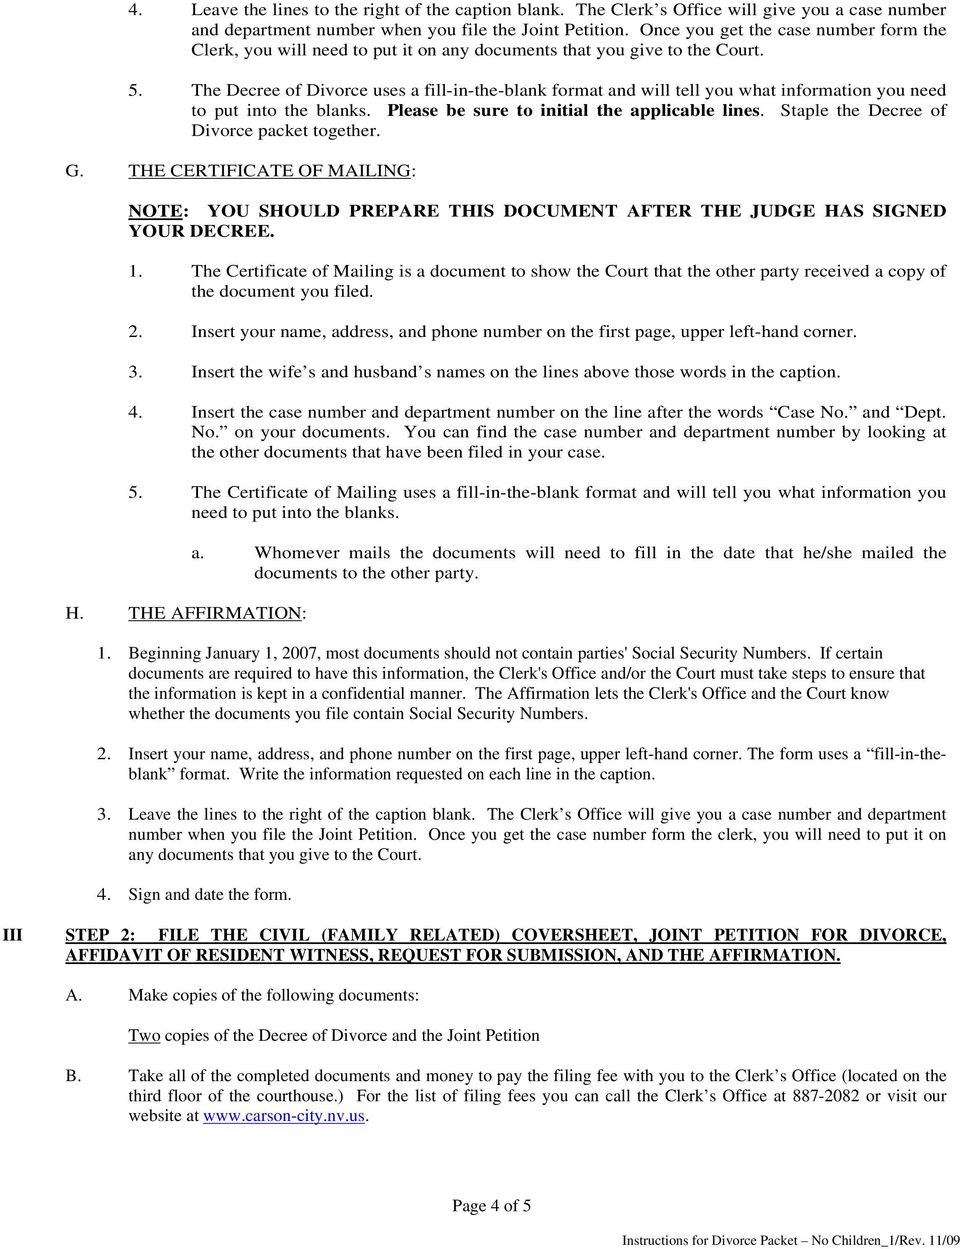 INSTRUCTIONS FOR JOINT PETITION FOR DIVORCE NO CHILDREN – Blank Divorce Decree